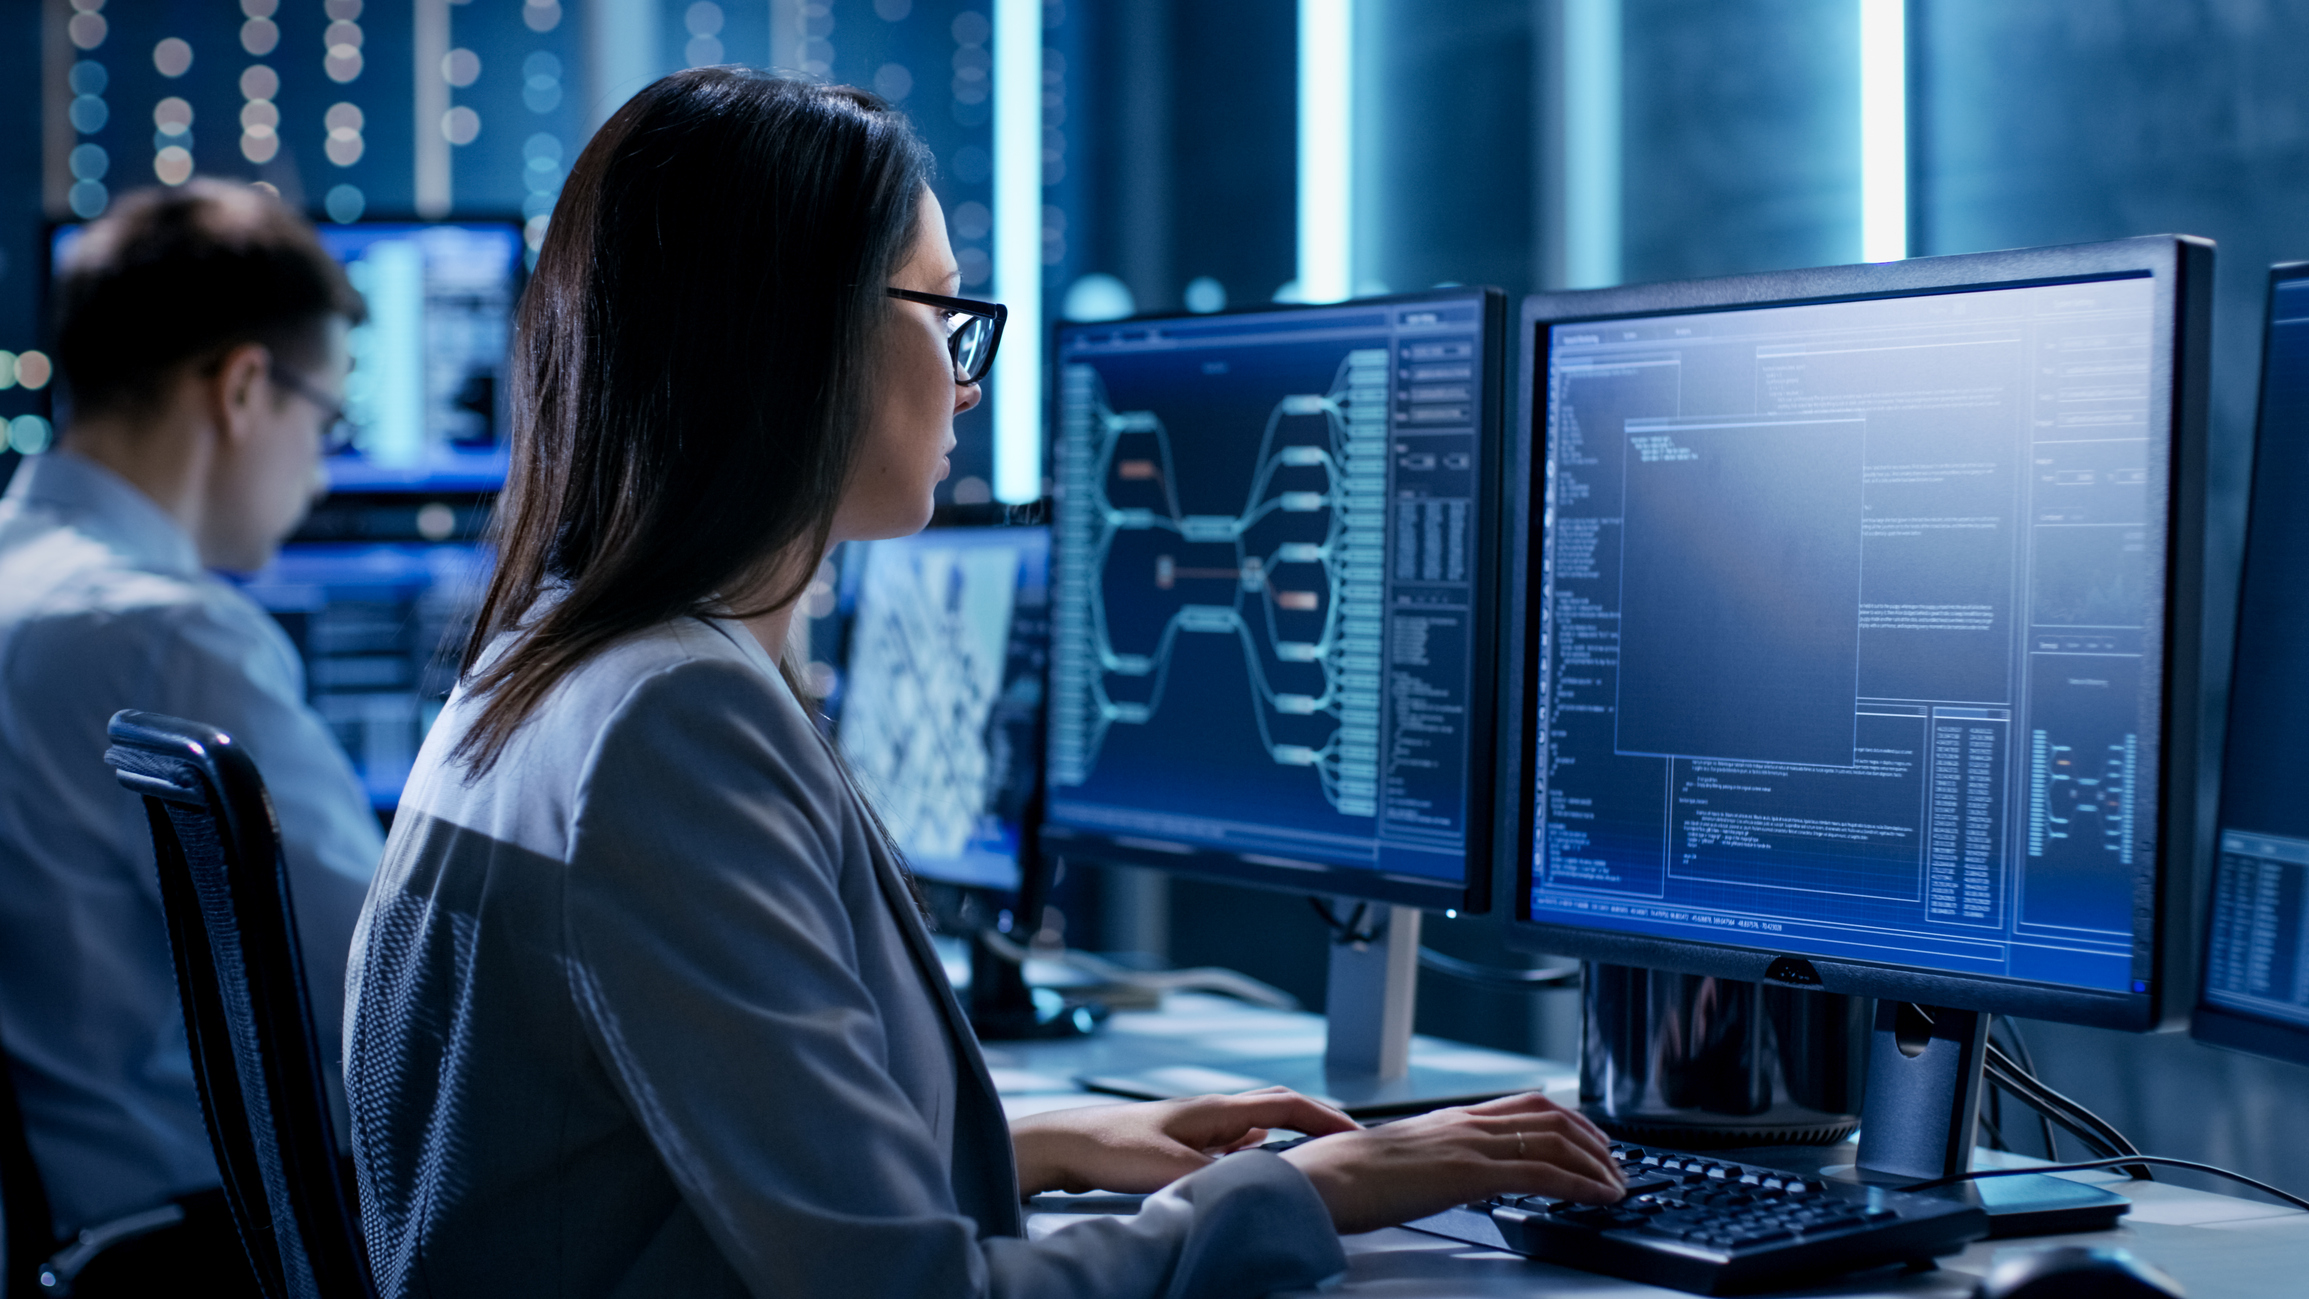 Female cybersecurity professional sitting at a computer working on coding